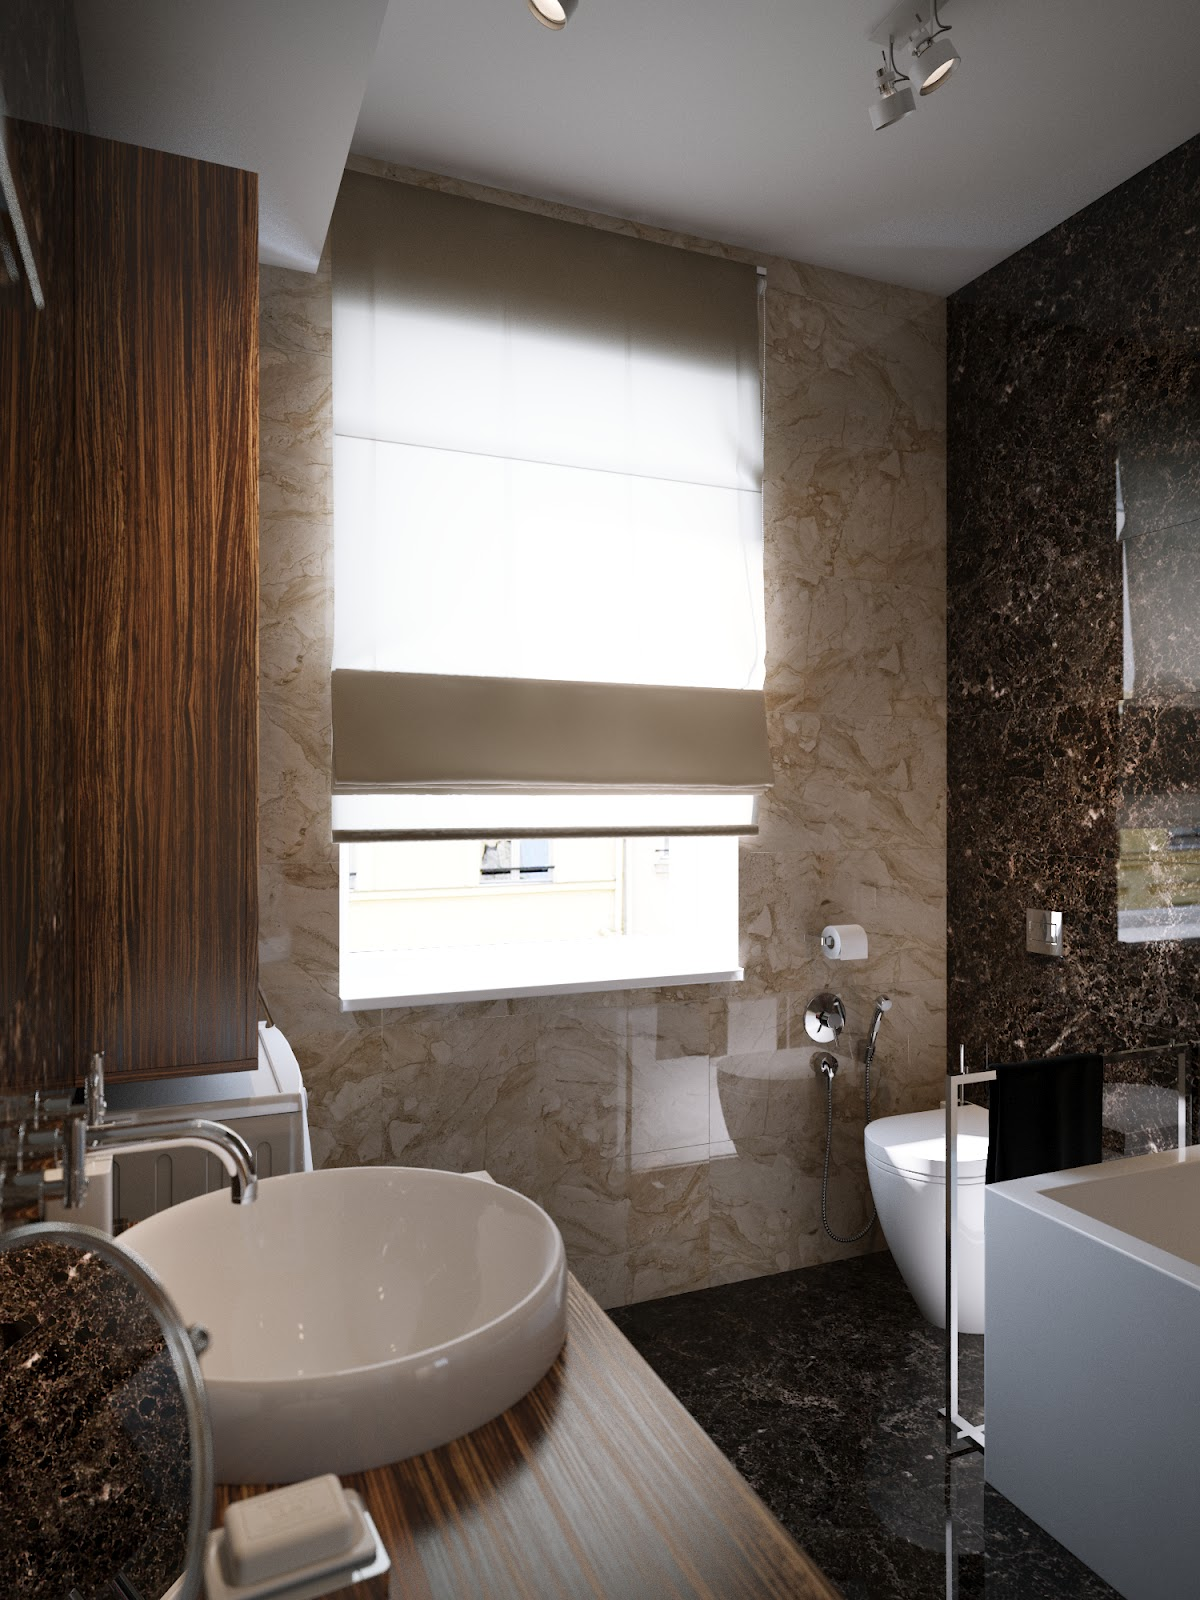 Modern bathroom design scheme interior design ideas for New bathroom ideas for 2012